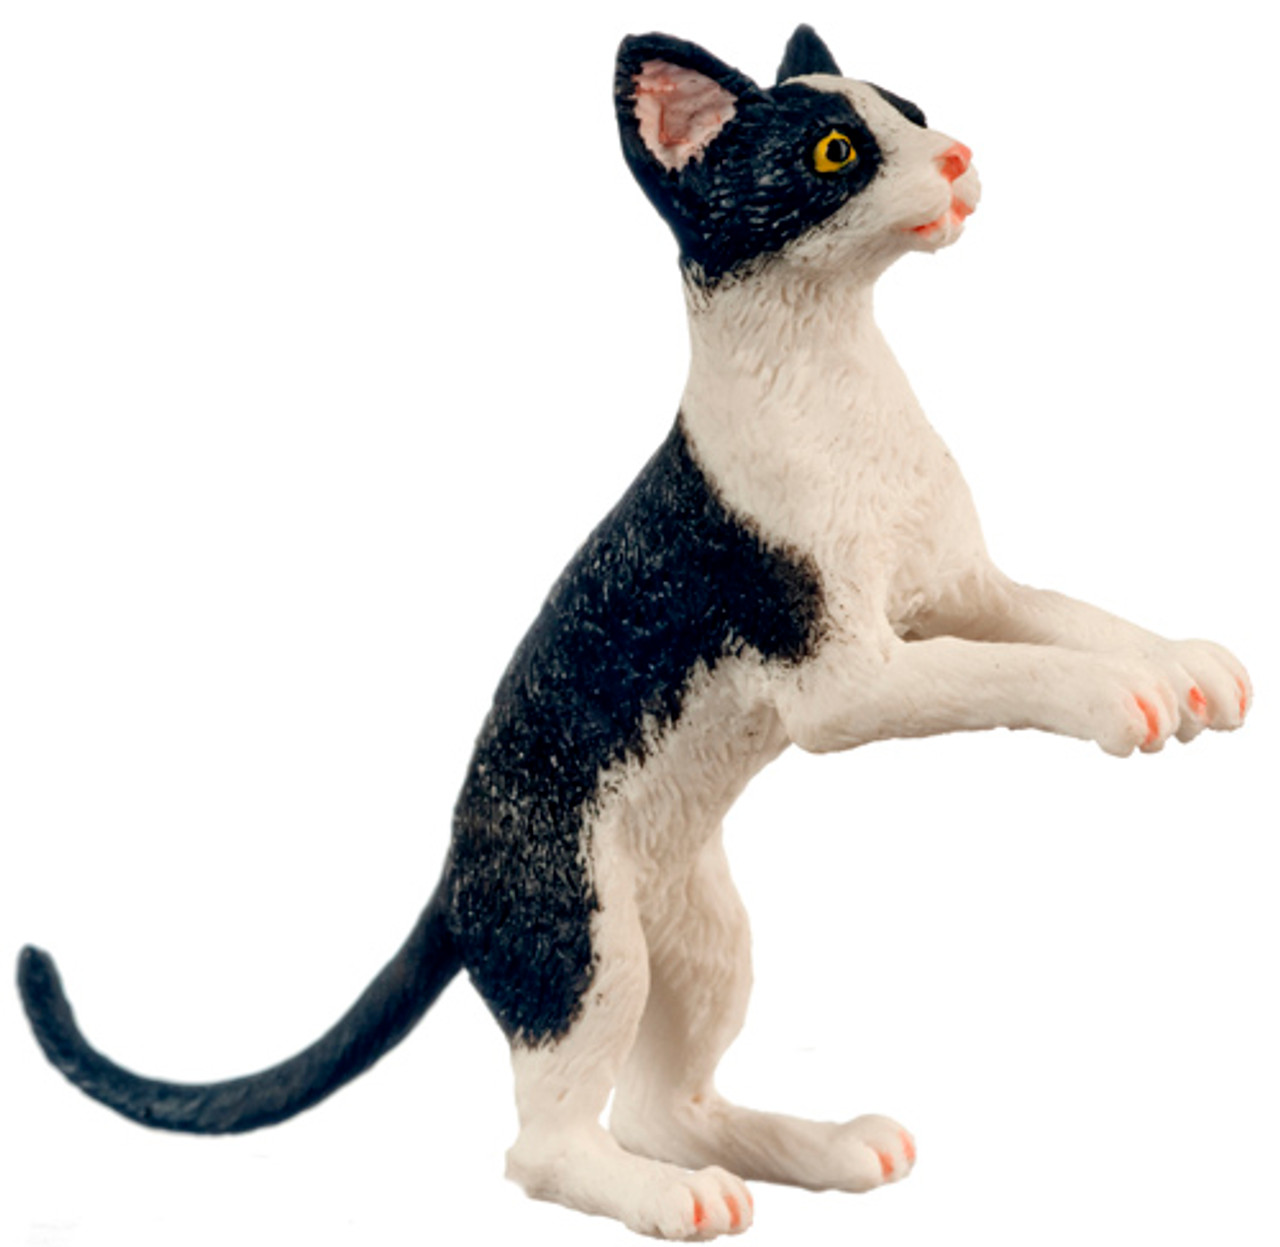 Dollhouse City - Dollhouse Miniatures Cat with Socks